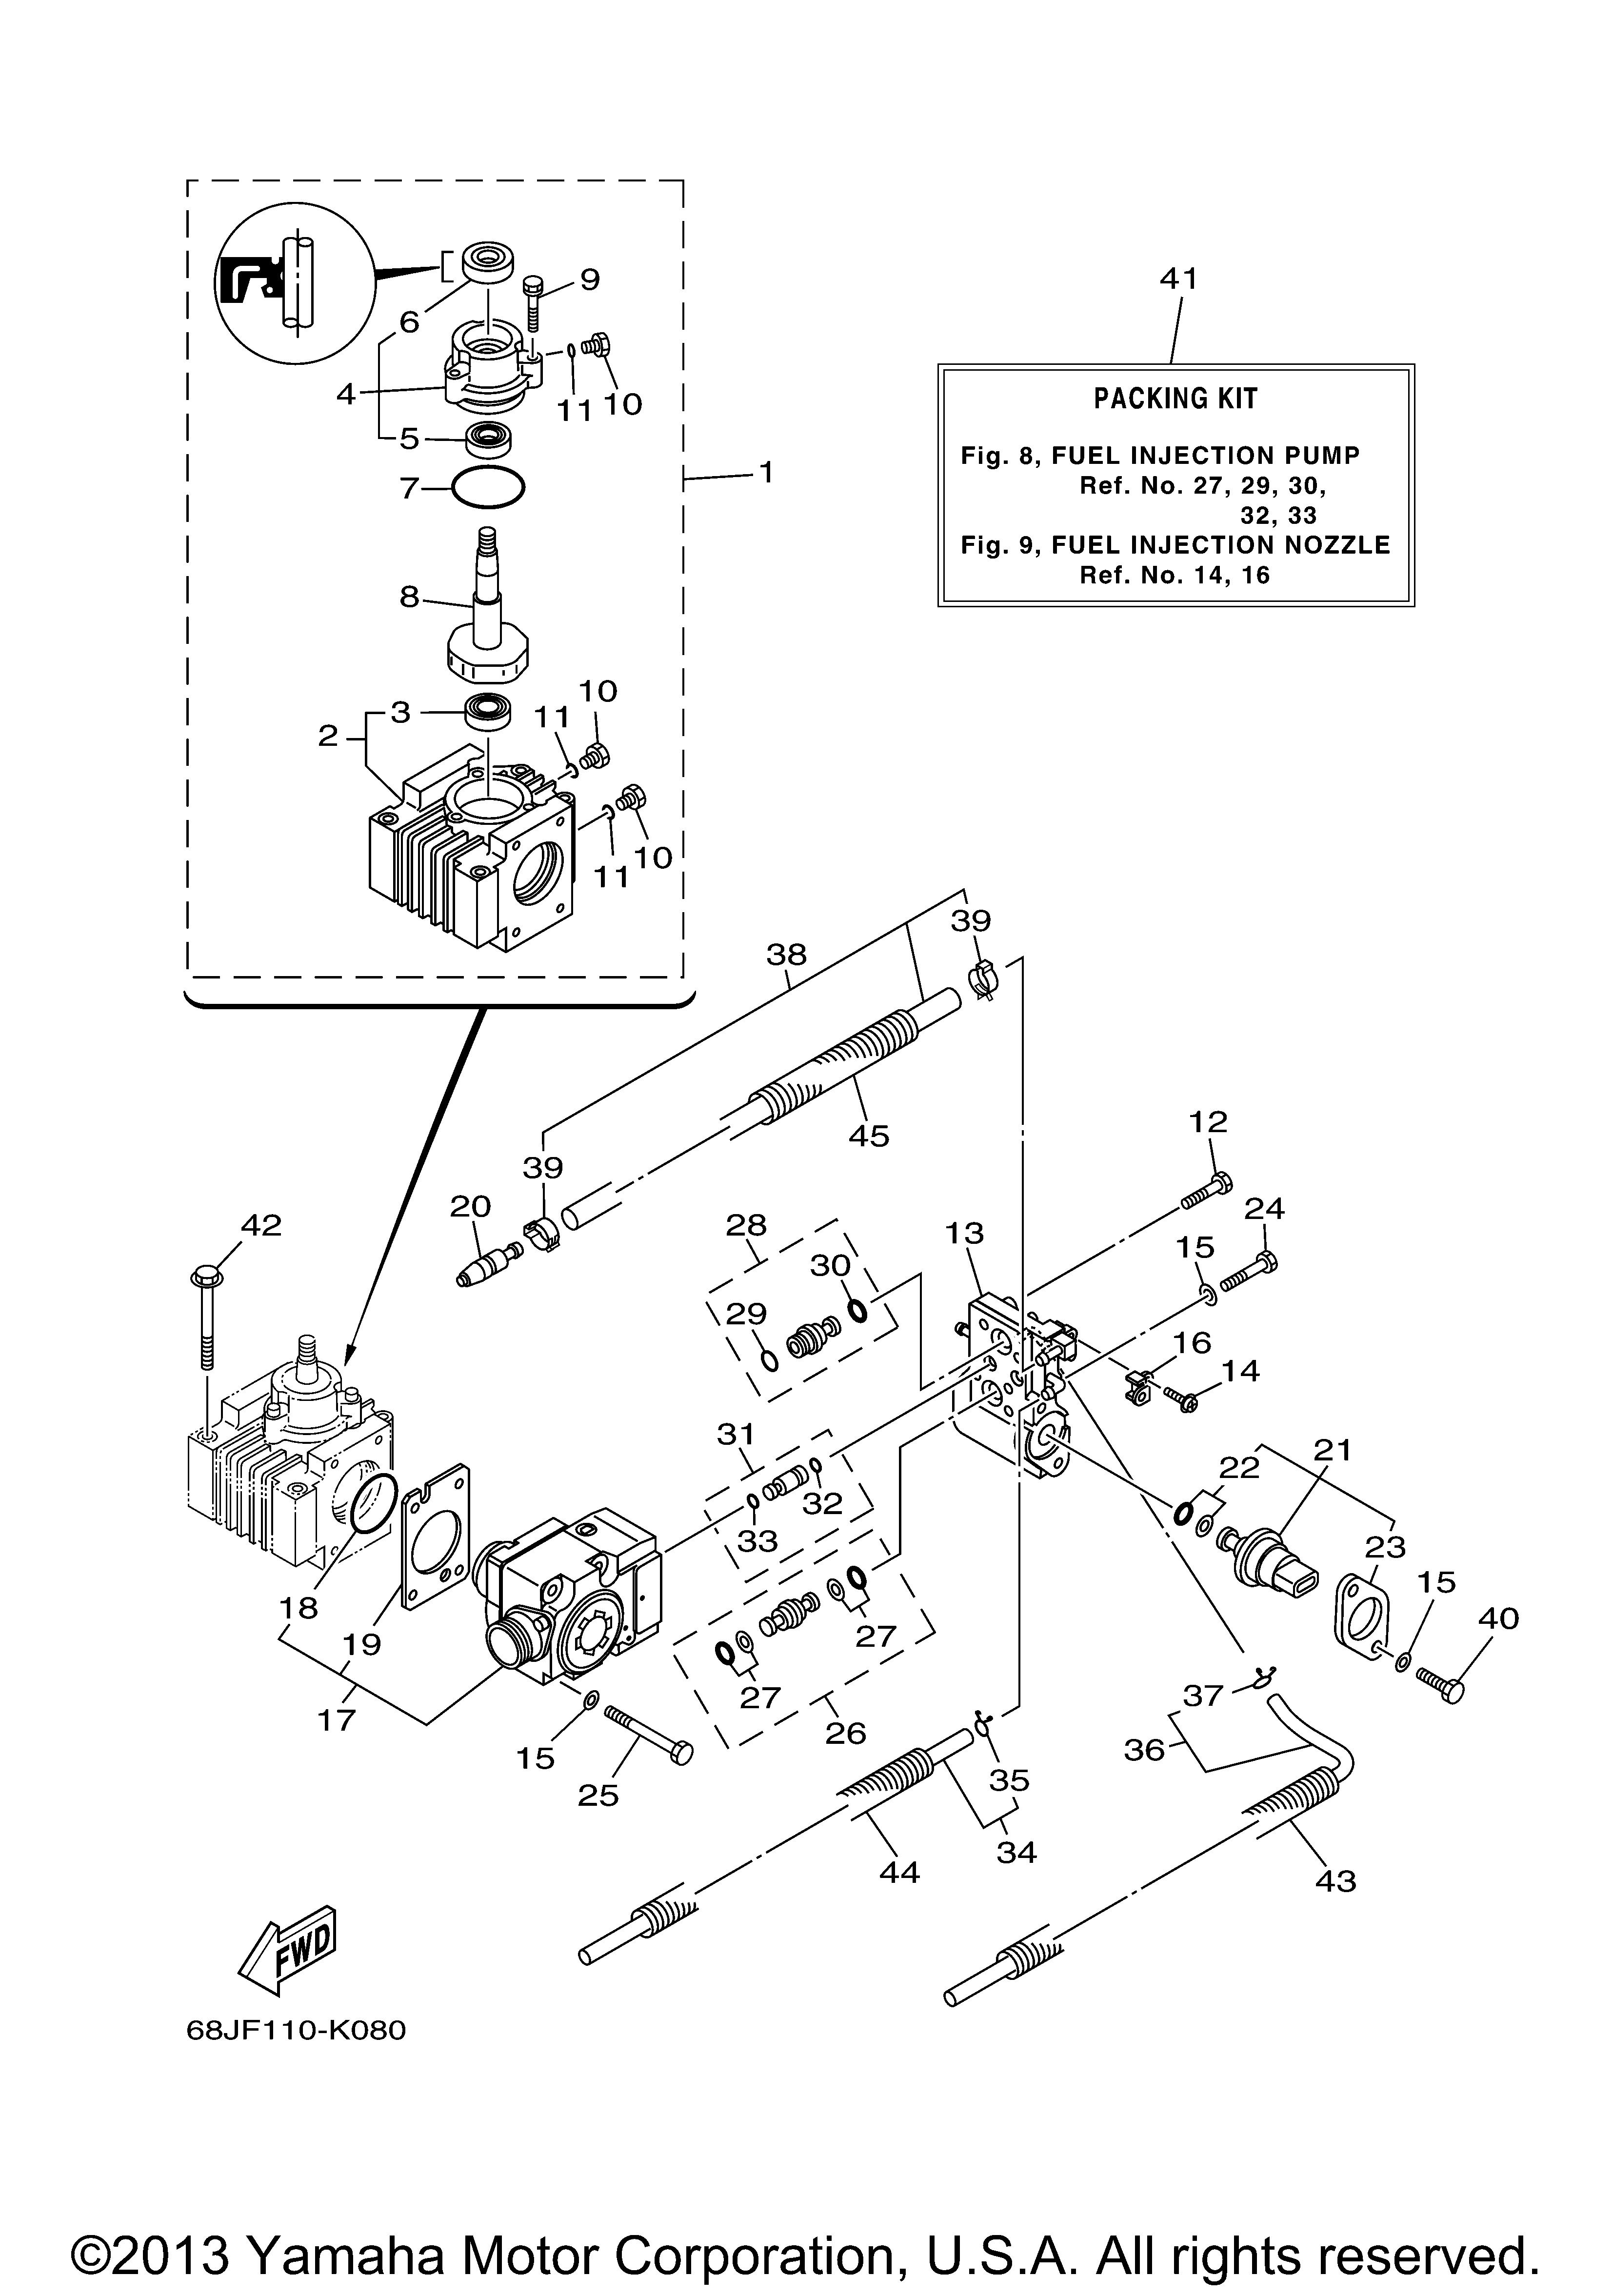 Yamaha Outboard Fuel Injection Pump